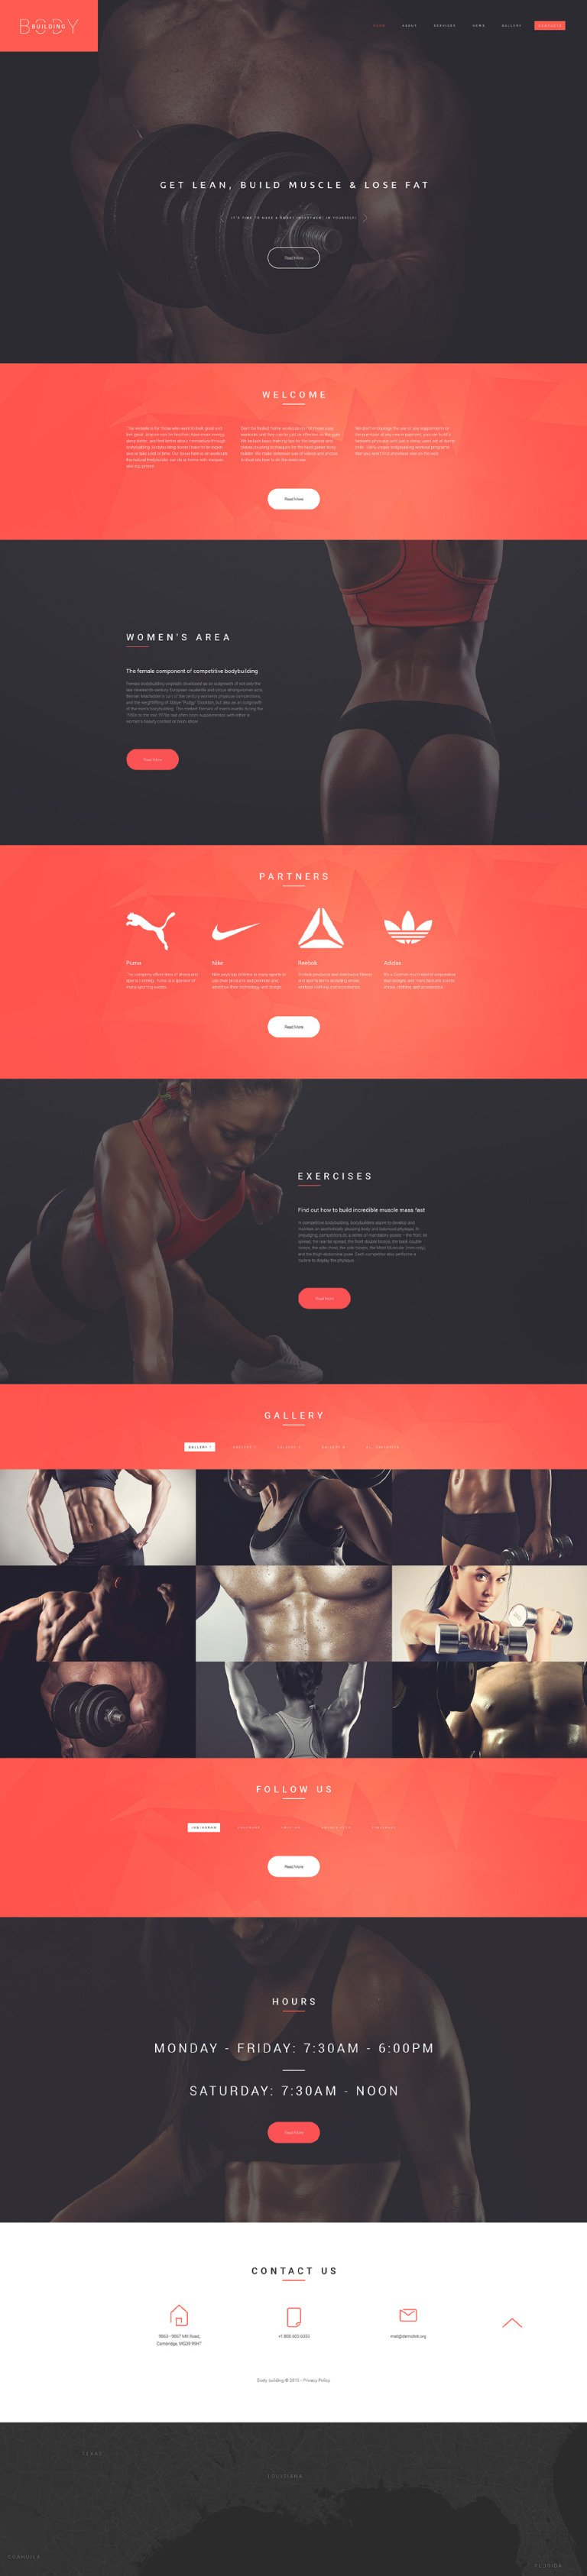 Bodybuilders' Club Website Template New Screenshots BIG